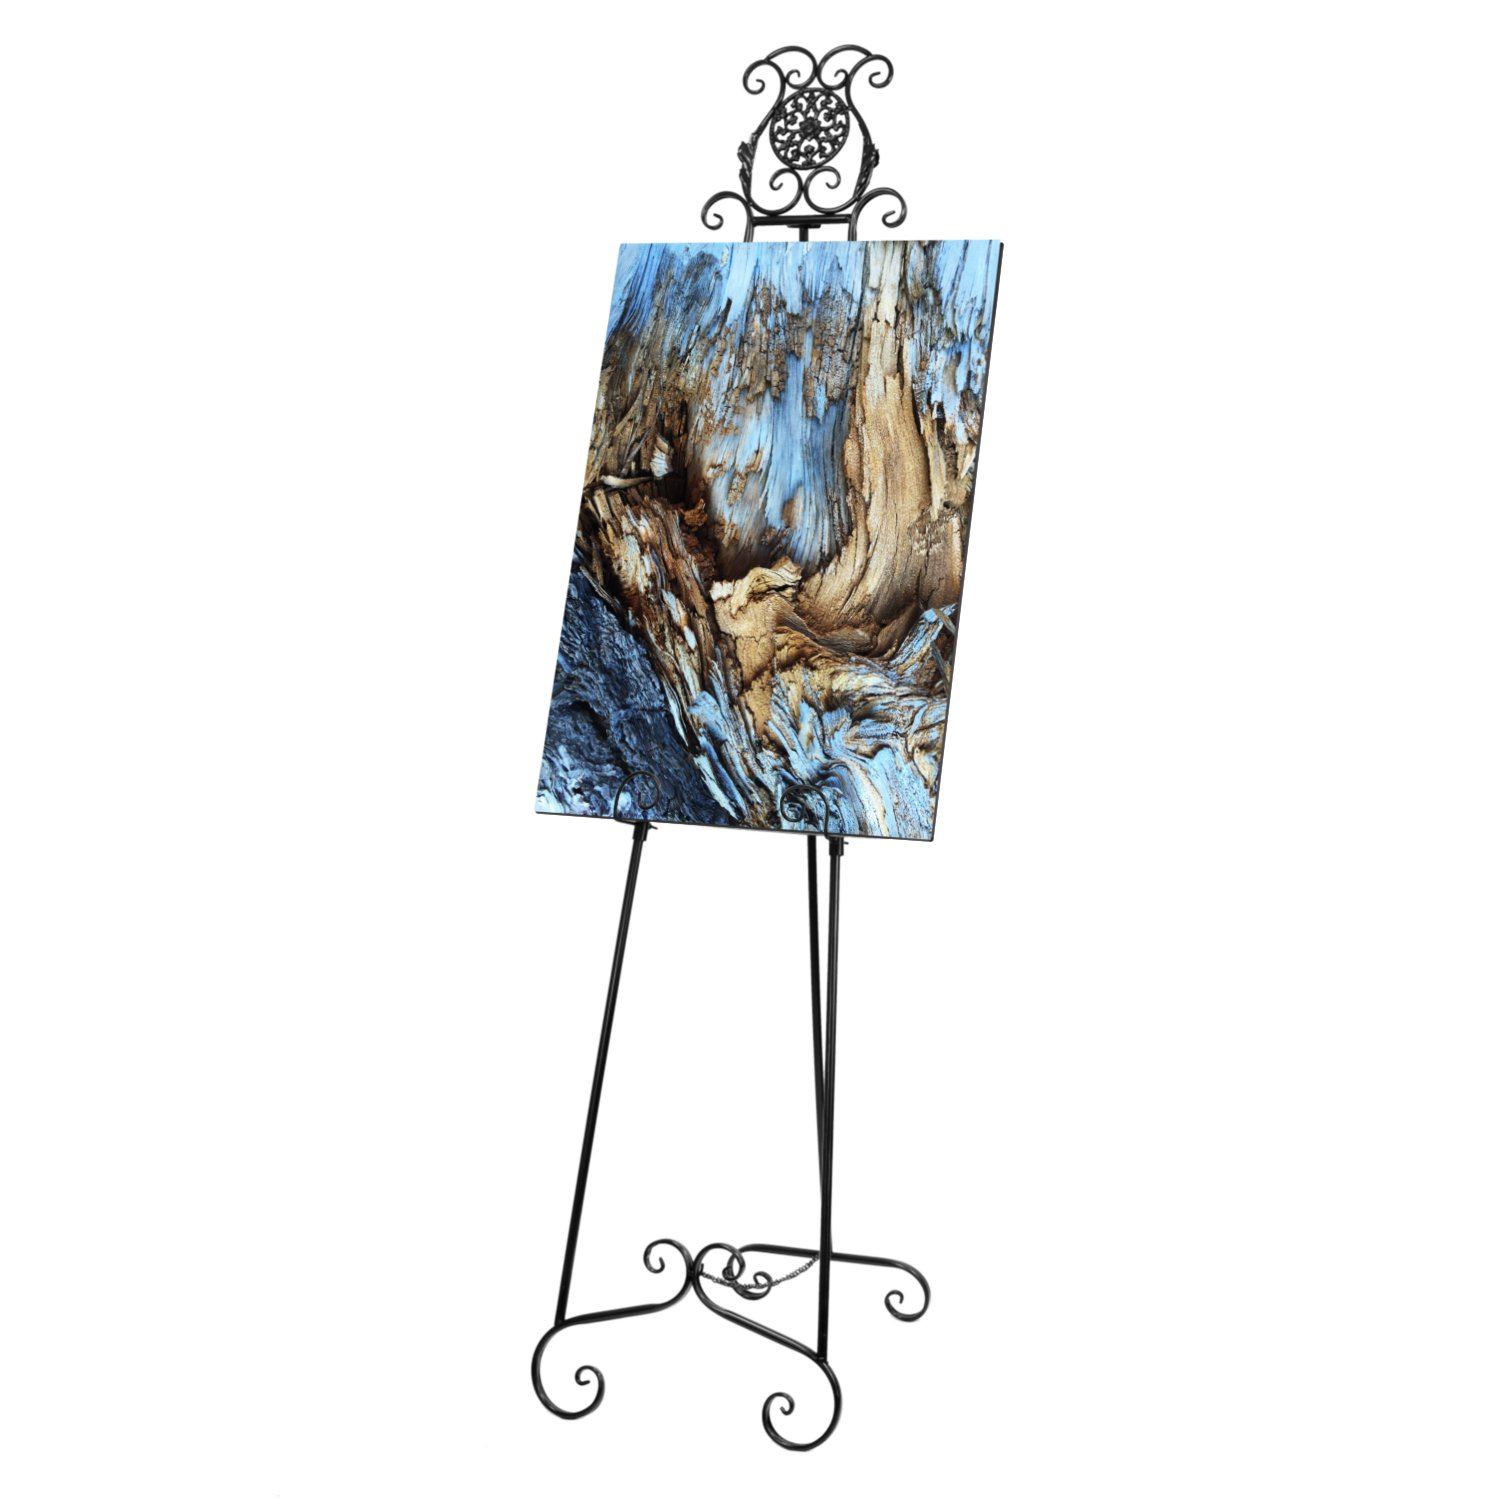 Source One Deluxe Large Metal Display Easel 70 Inches Tall, White, Brown & Black Available (Black)